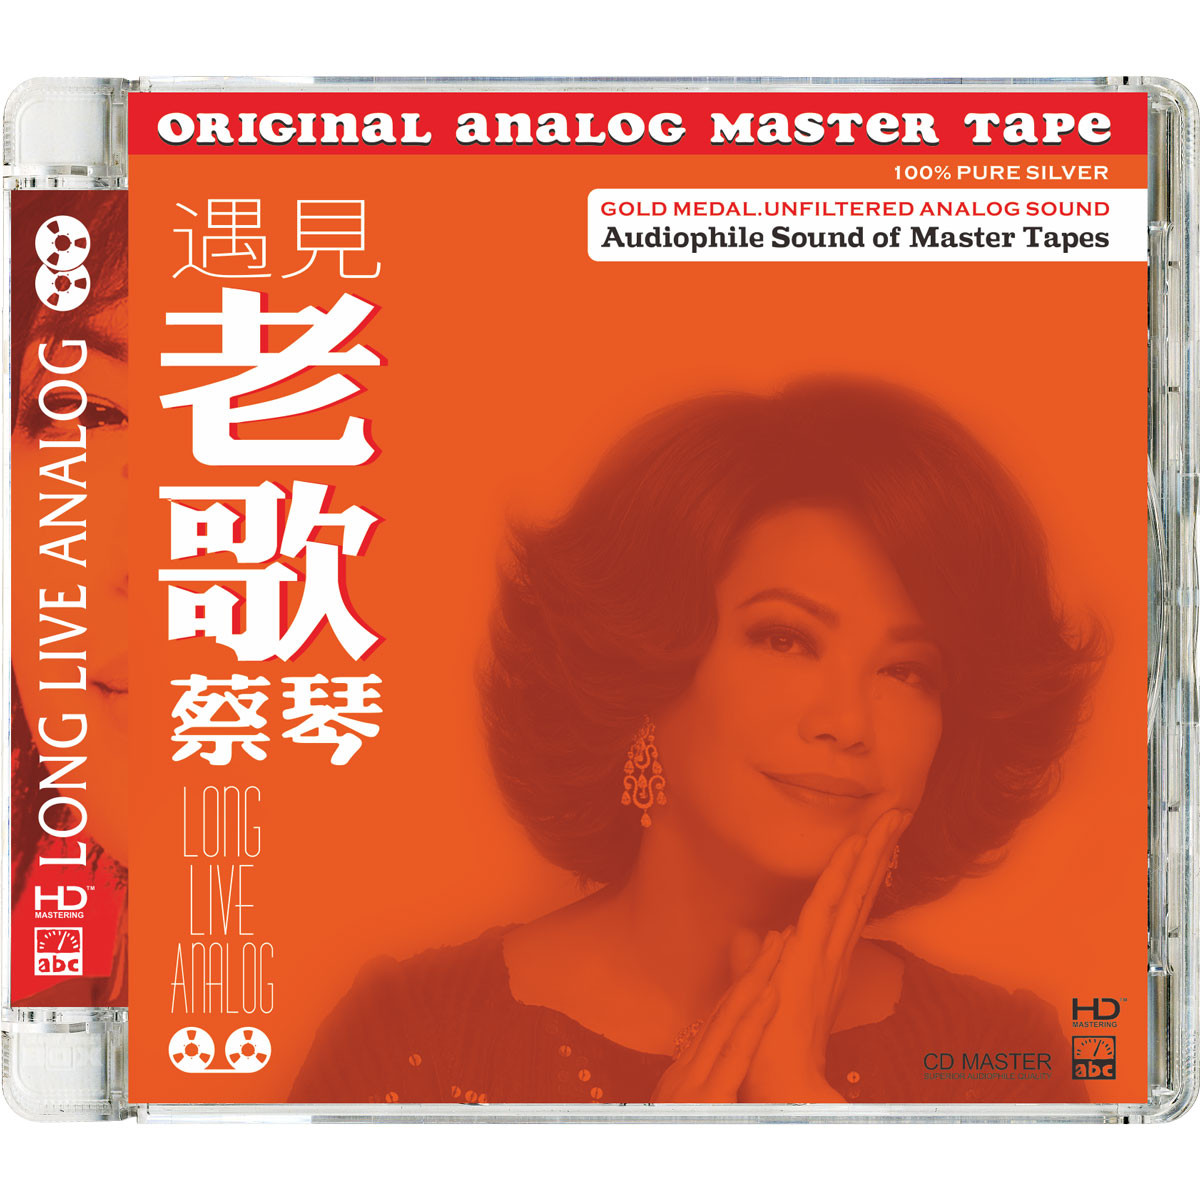 Tsai Chin-Meet with Old Songs - Chinese Music - HD-Mastering